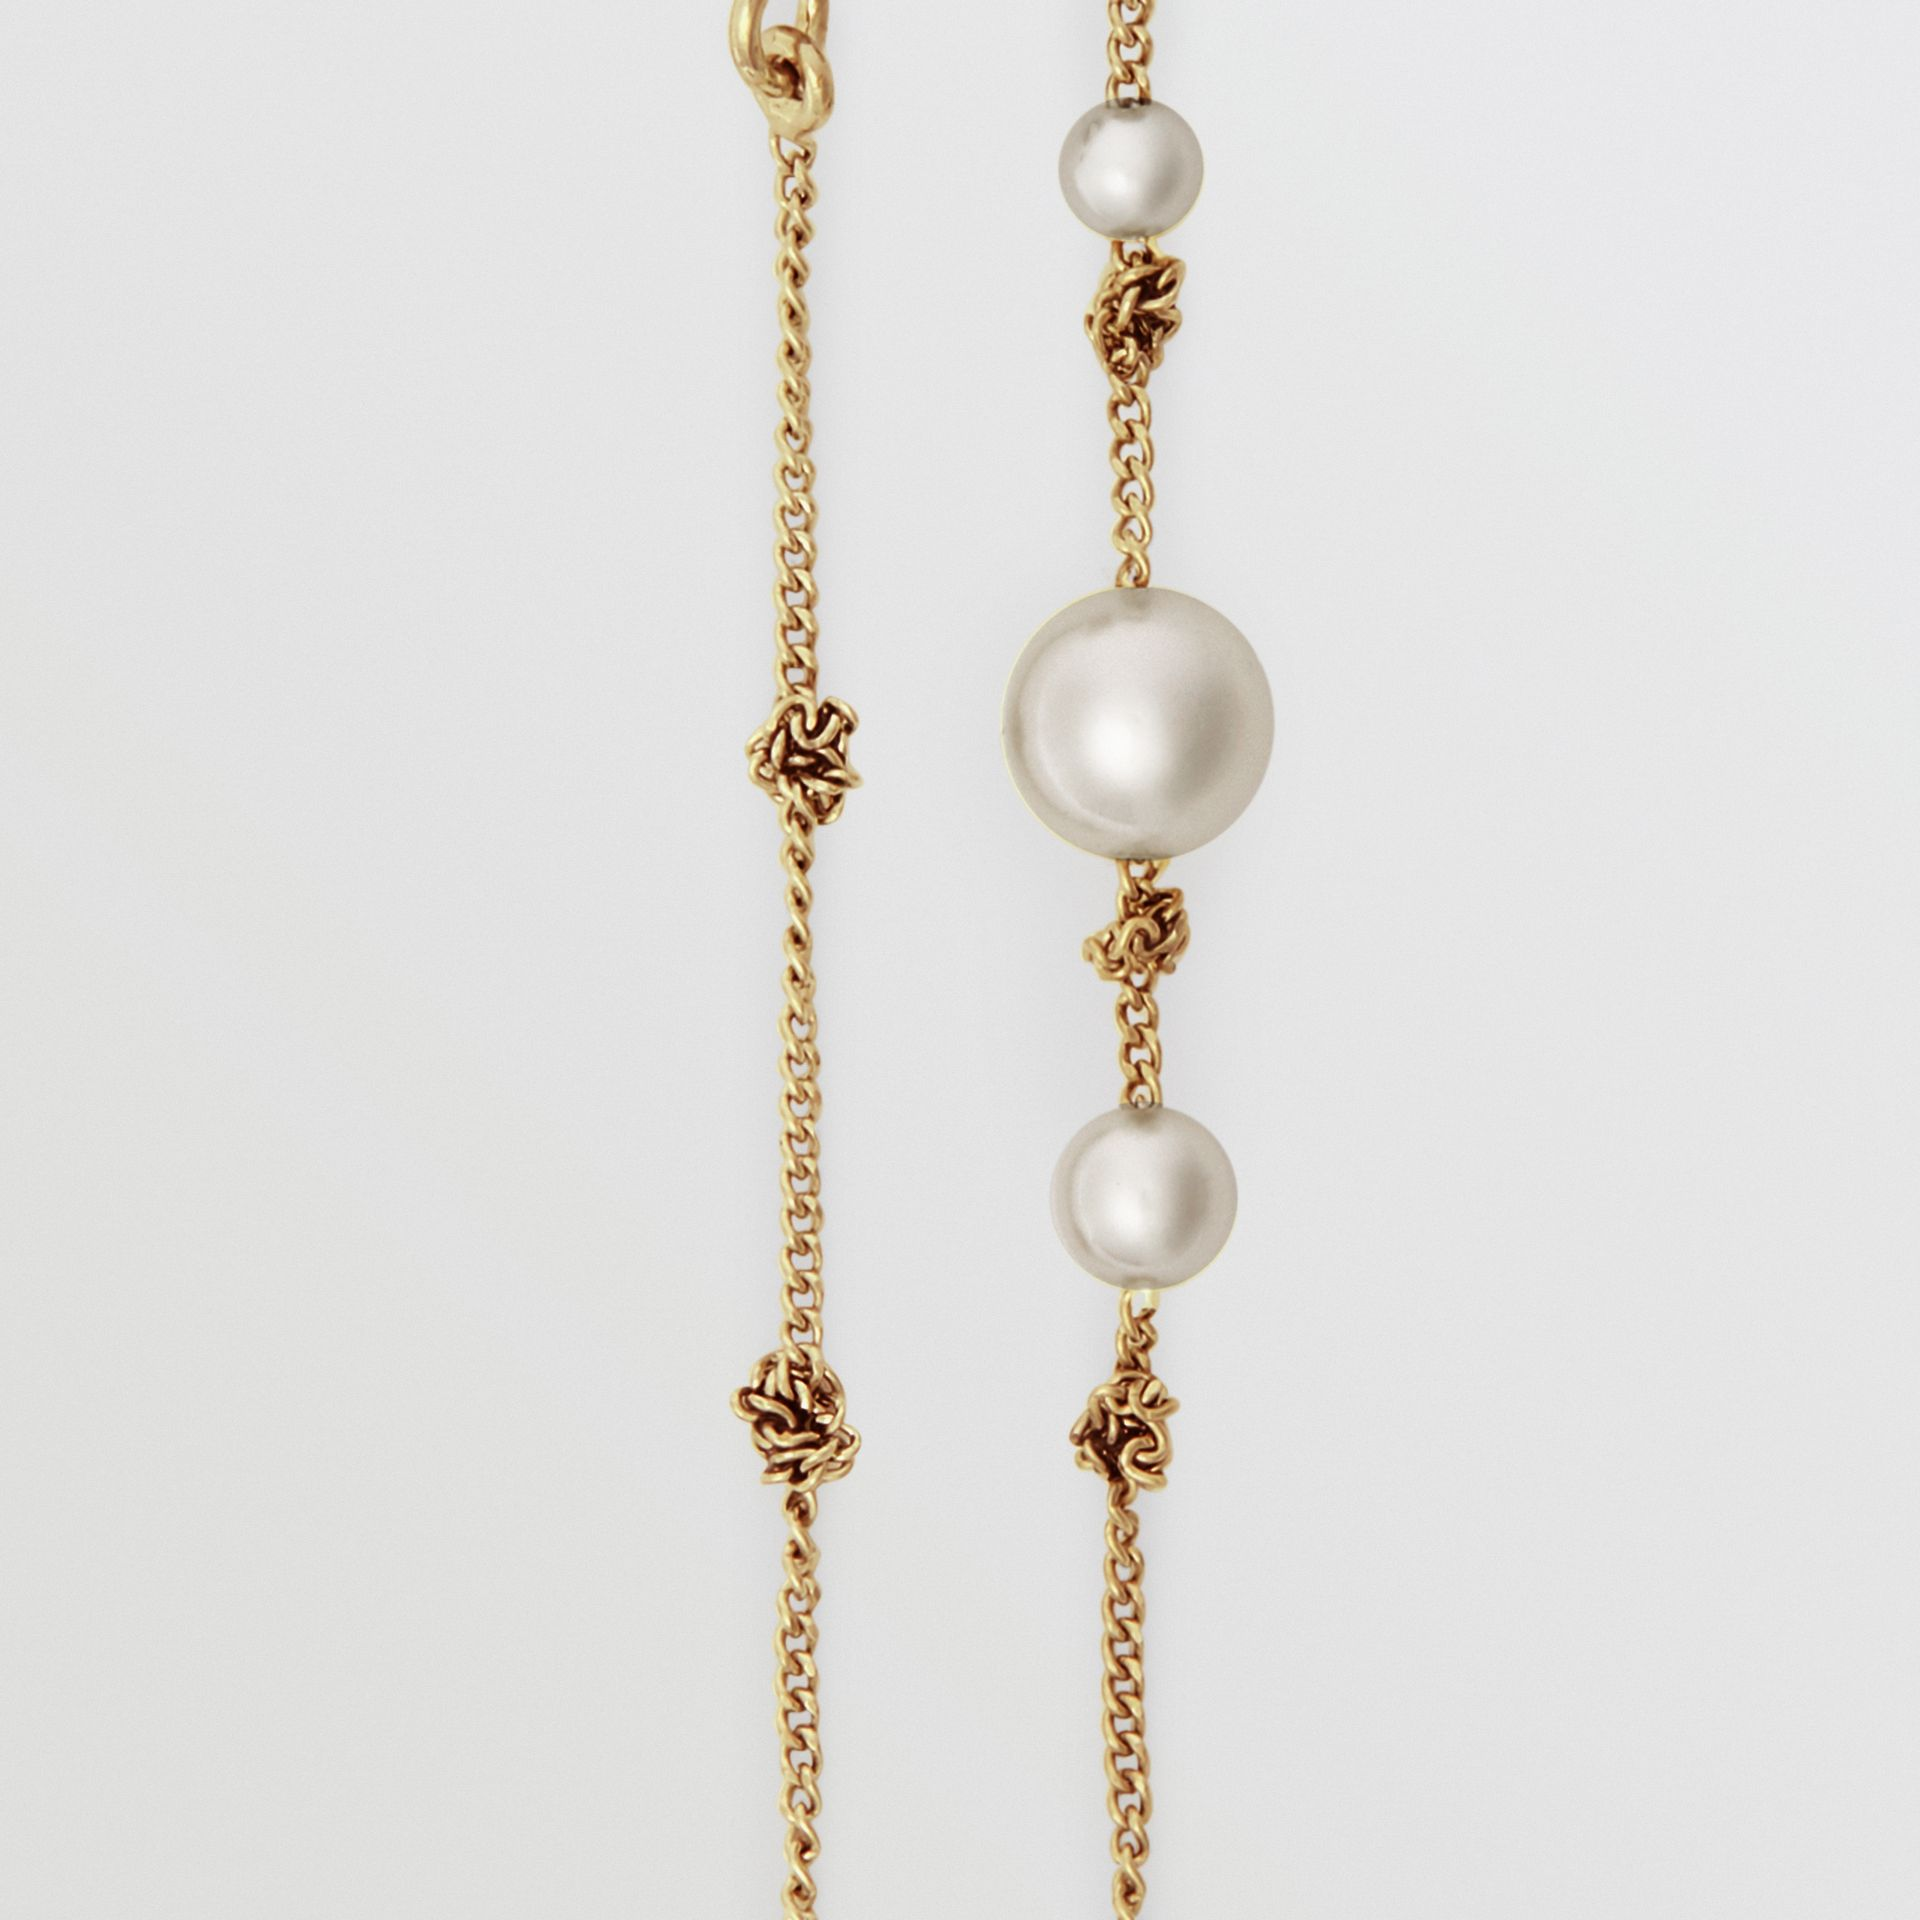 Faux Pearl Gold-plated Drop Earrings in Light - Women | Burberry - gallery image 1